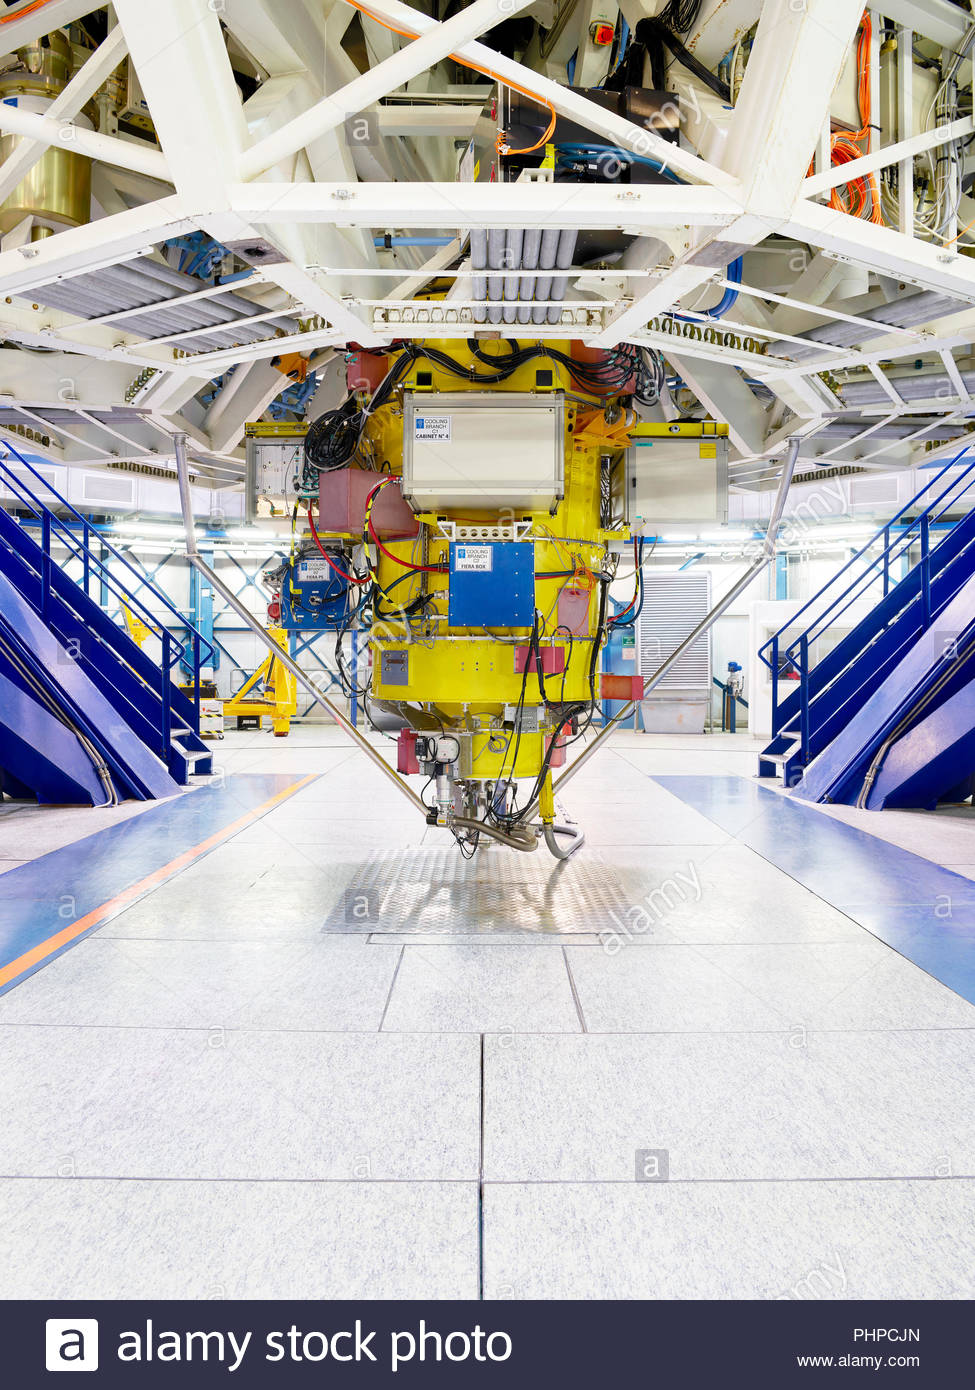 Telescope machinery at Paranal Observatory in Chile - Stock Image